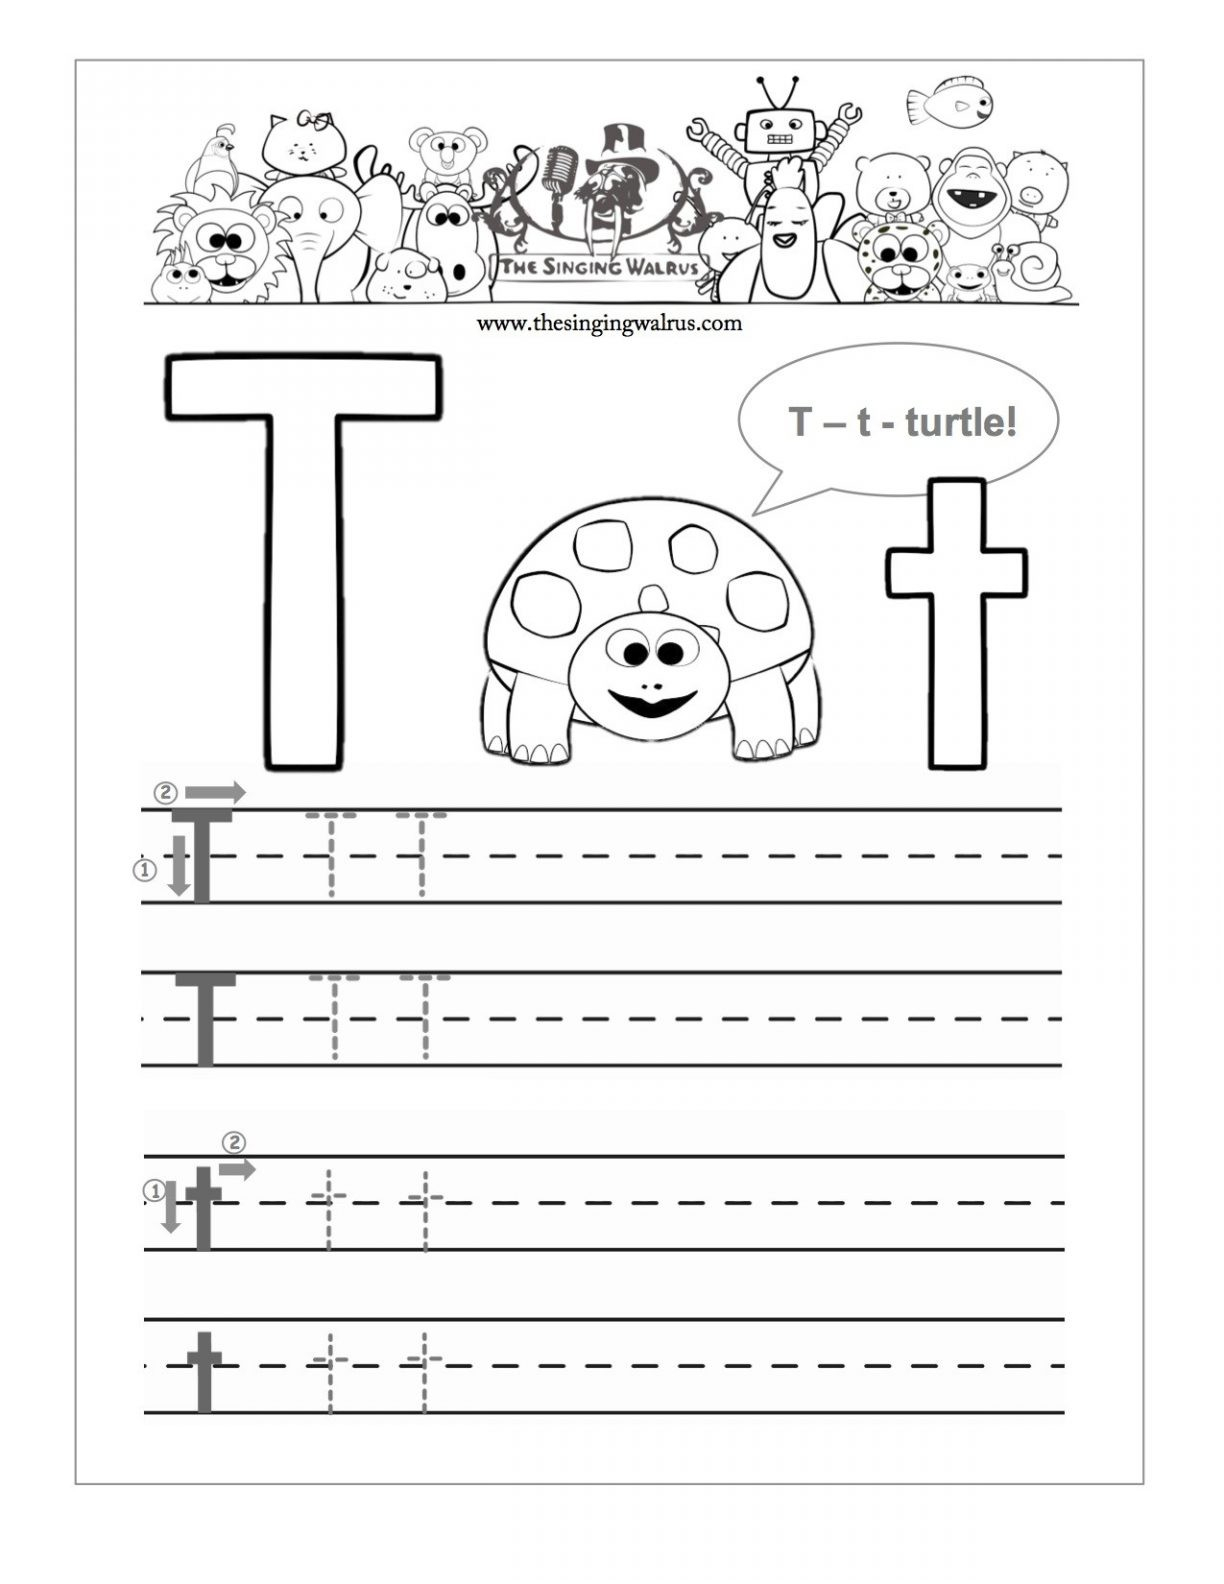 20 Learning The Letter T Worksheets | Kittybabylove with regard to Letter T Worksheets Sparklebox